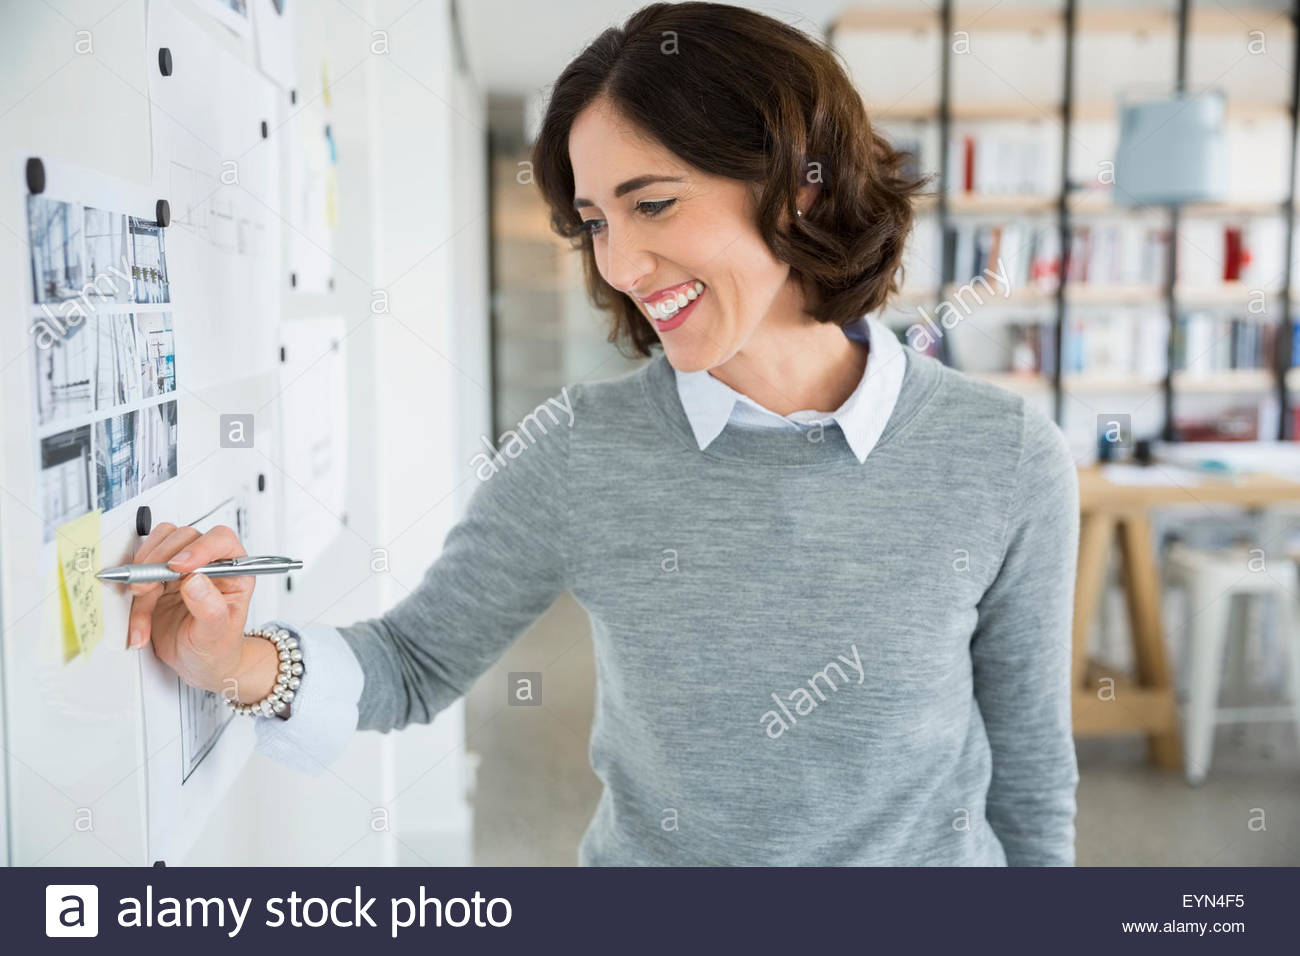 Smiling architect writing on adhesive note on wall - Stock Image